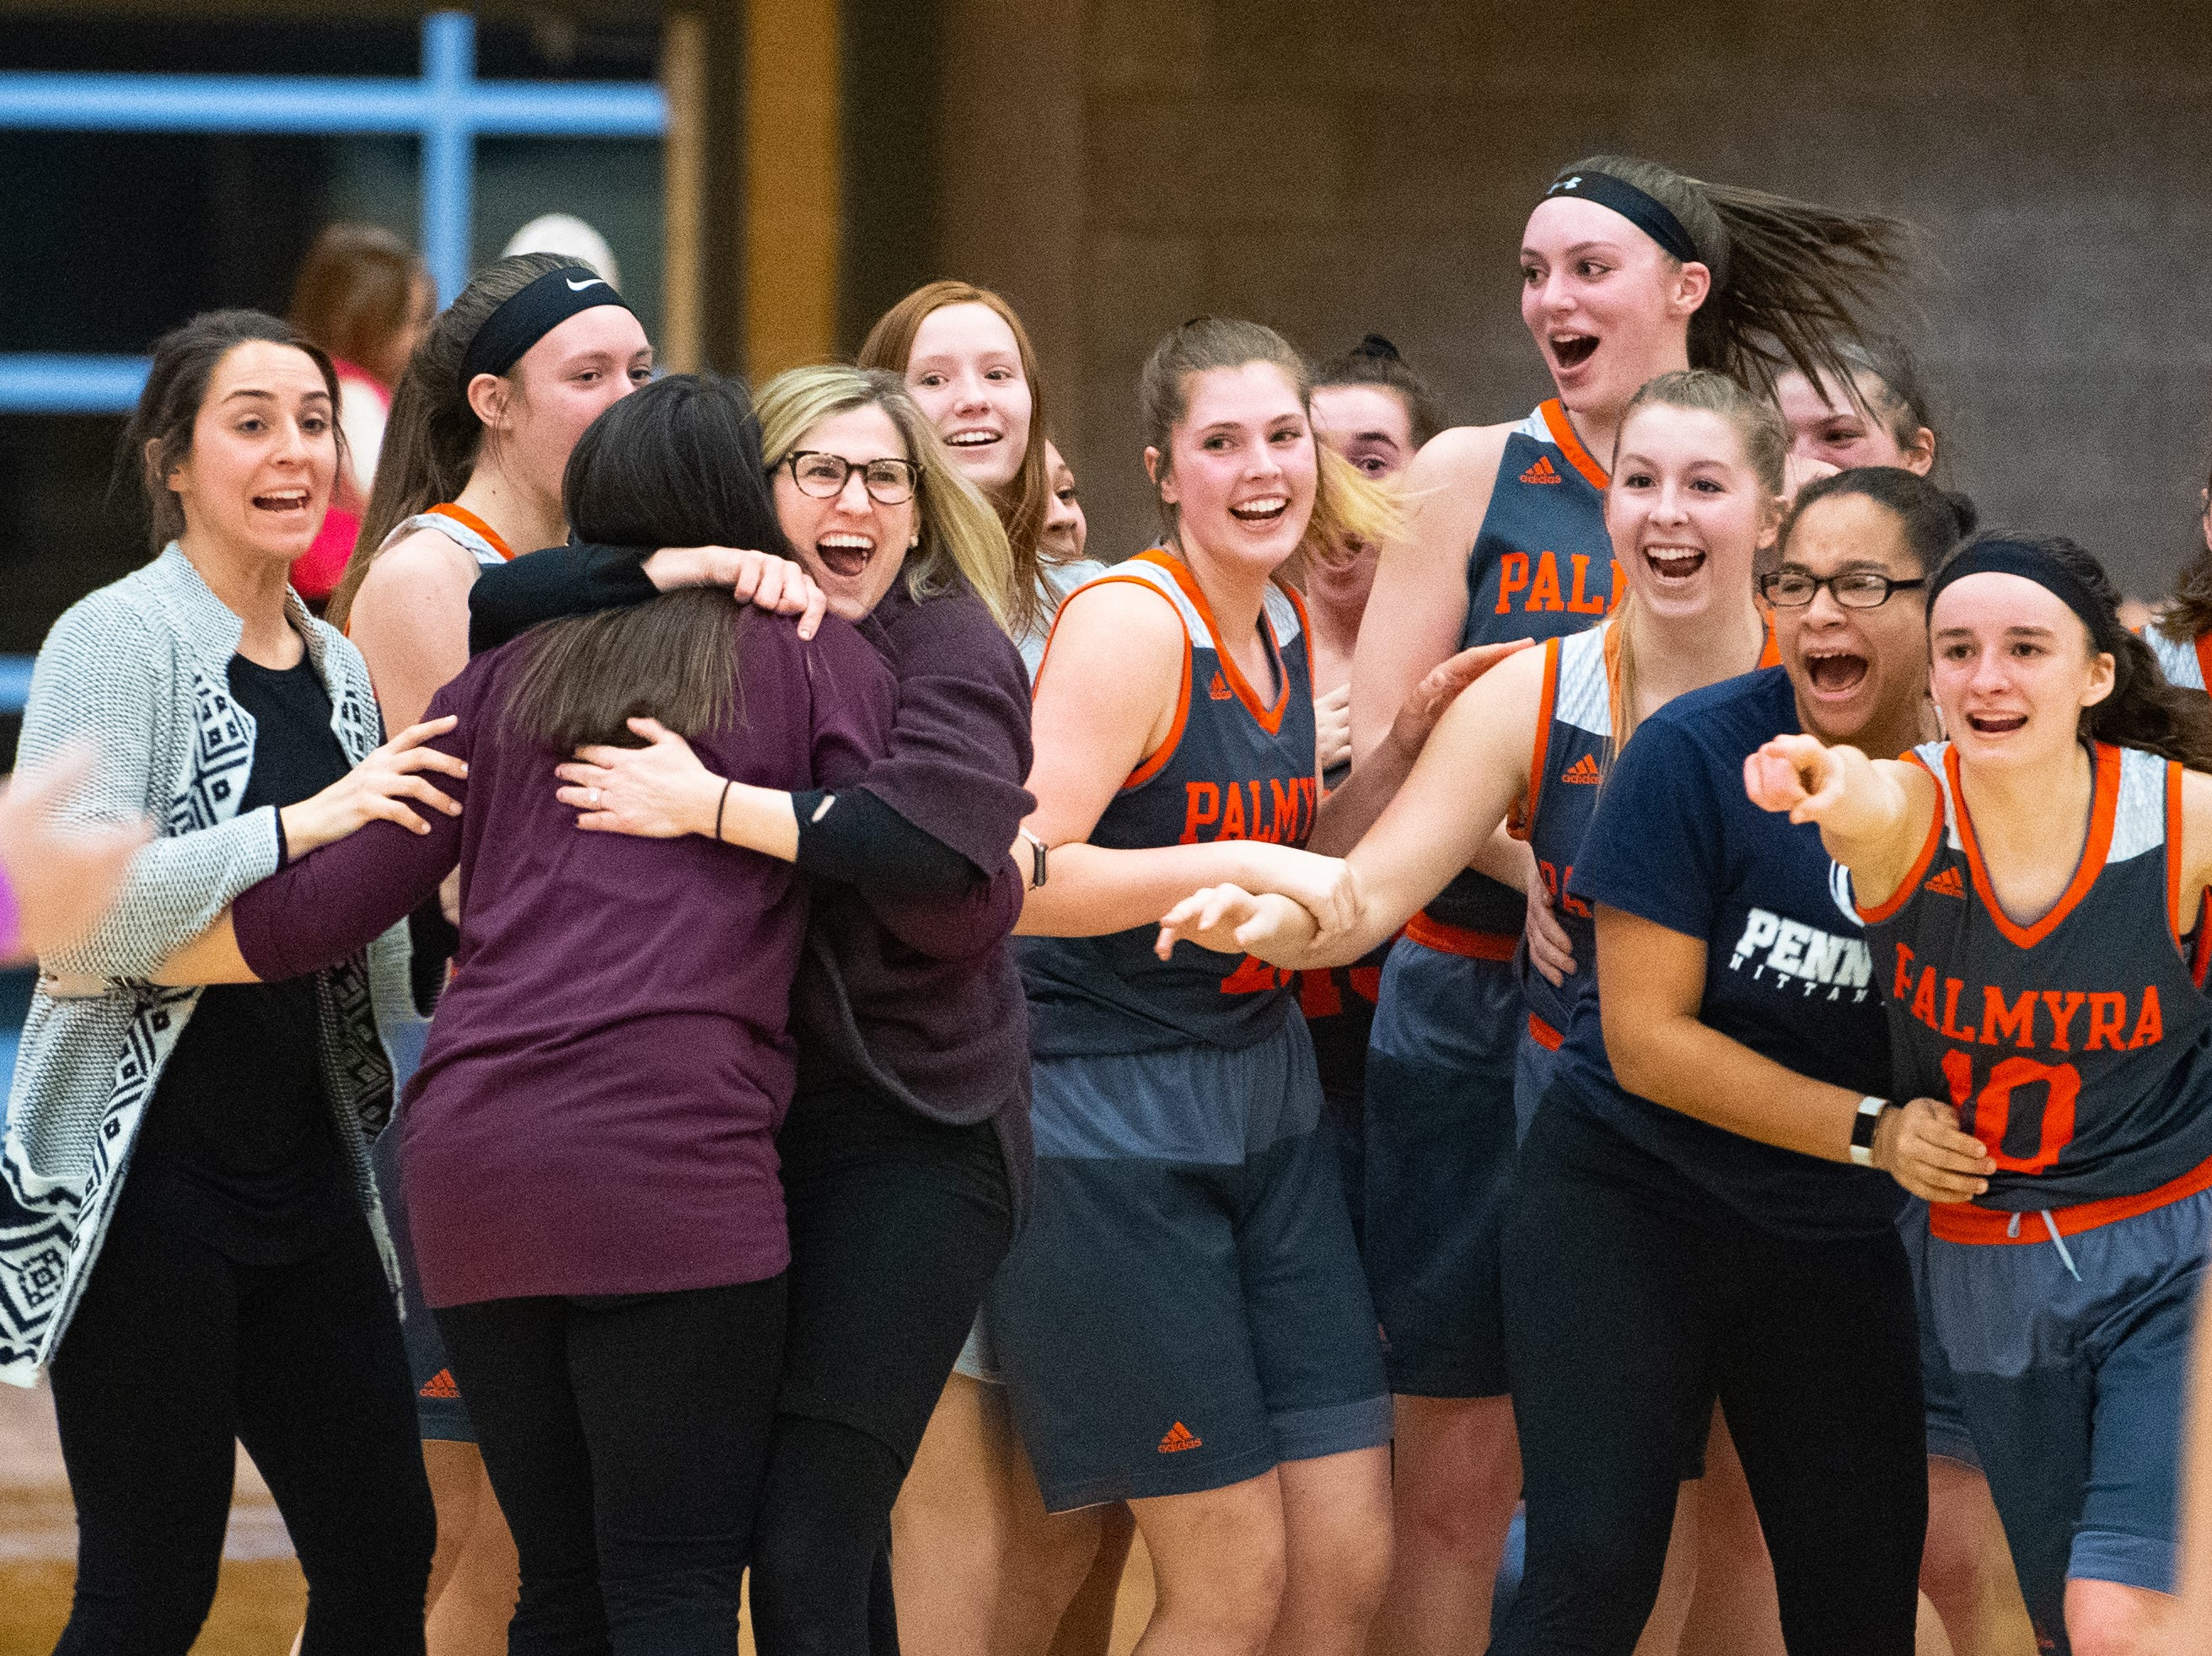 The Cougars celebrate their win after scoring a buzzer beater layup during the District 3 Class 5A girls' basketball quarterfinal between Spring Grove and Palmyra, Friday, February 22, 2019 at Spring Grove Area High School. The Cougars defeated the Rockets 43 to 41.